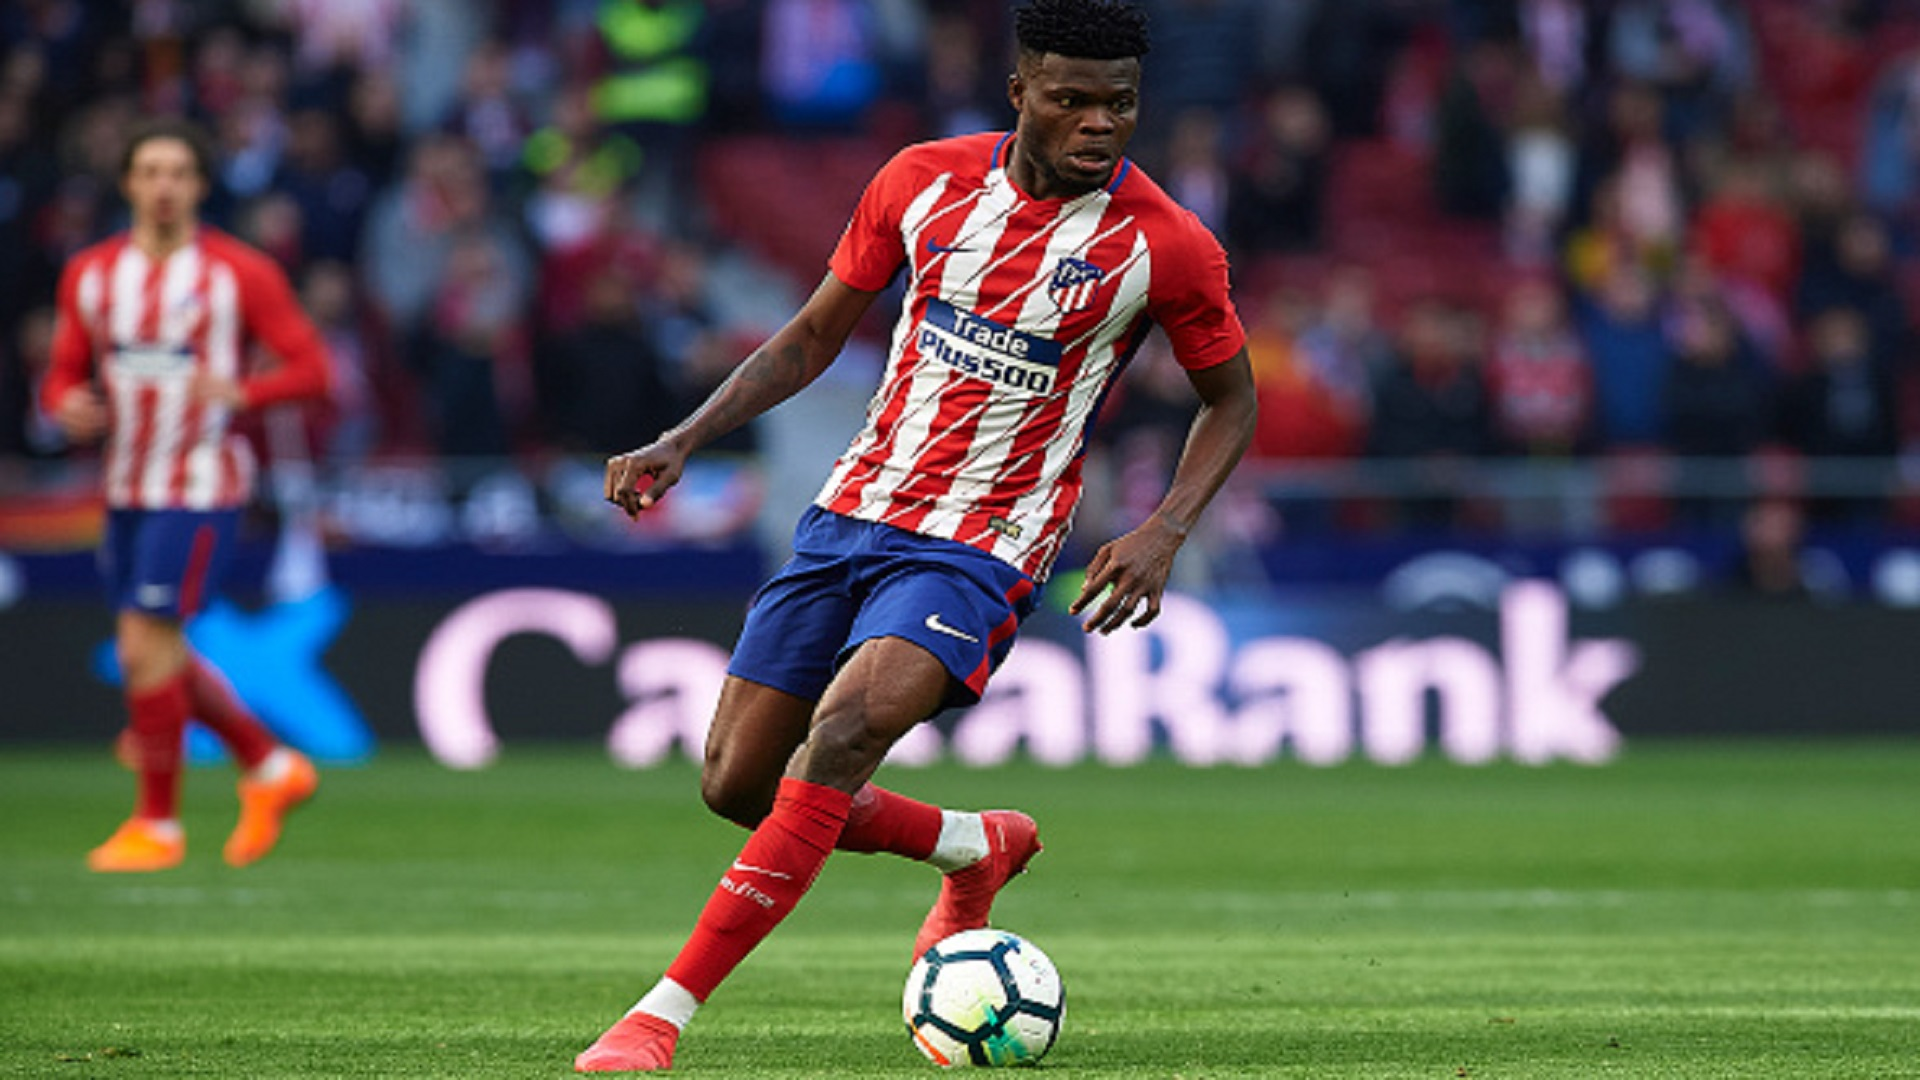 Tanko rooting for Ghana duo Asamoah and Partey in Uefa Champions League group stage